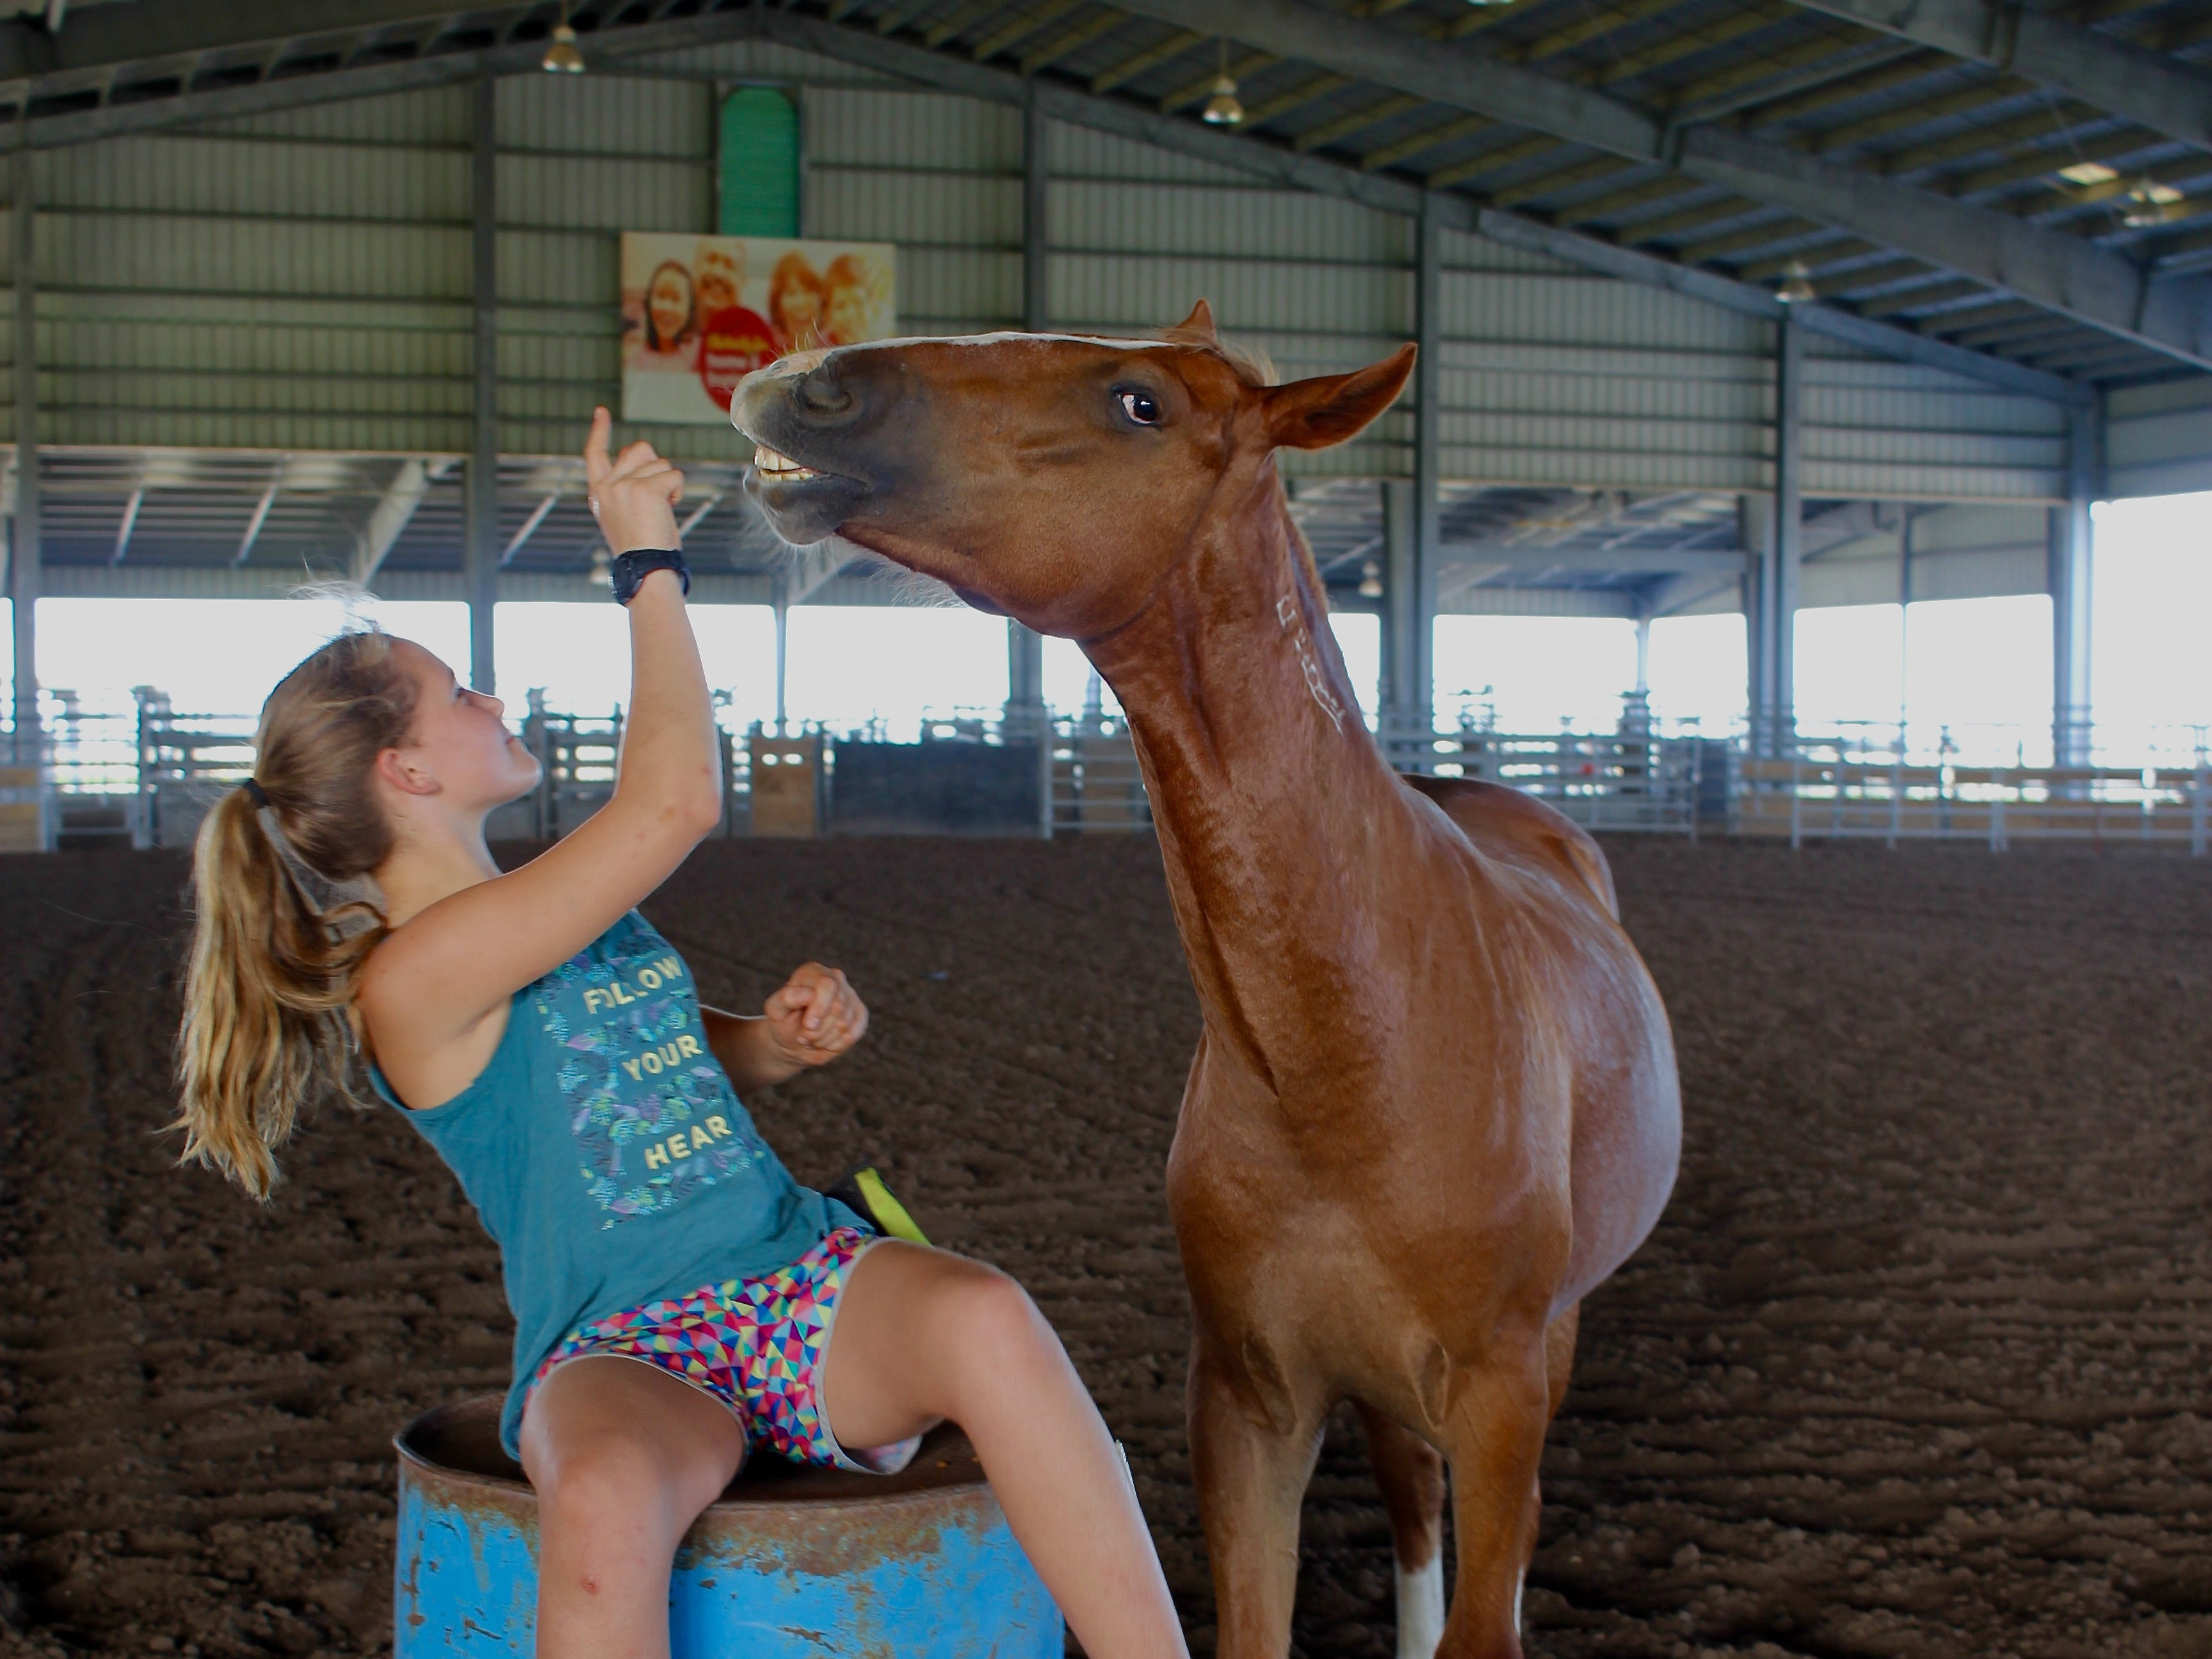 Frances Walsh, 11, will compete in the Extreme Mustang Makeover with this young horse rescued from public land.